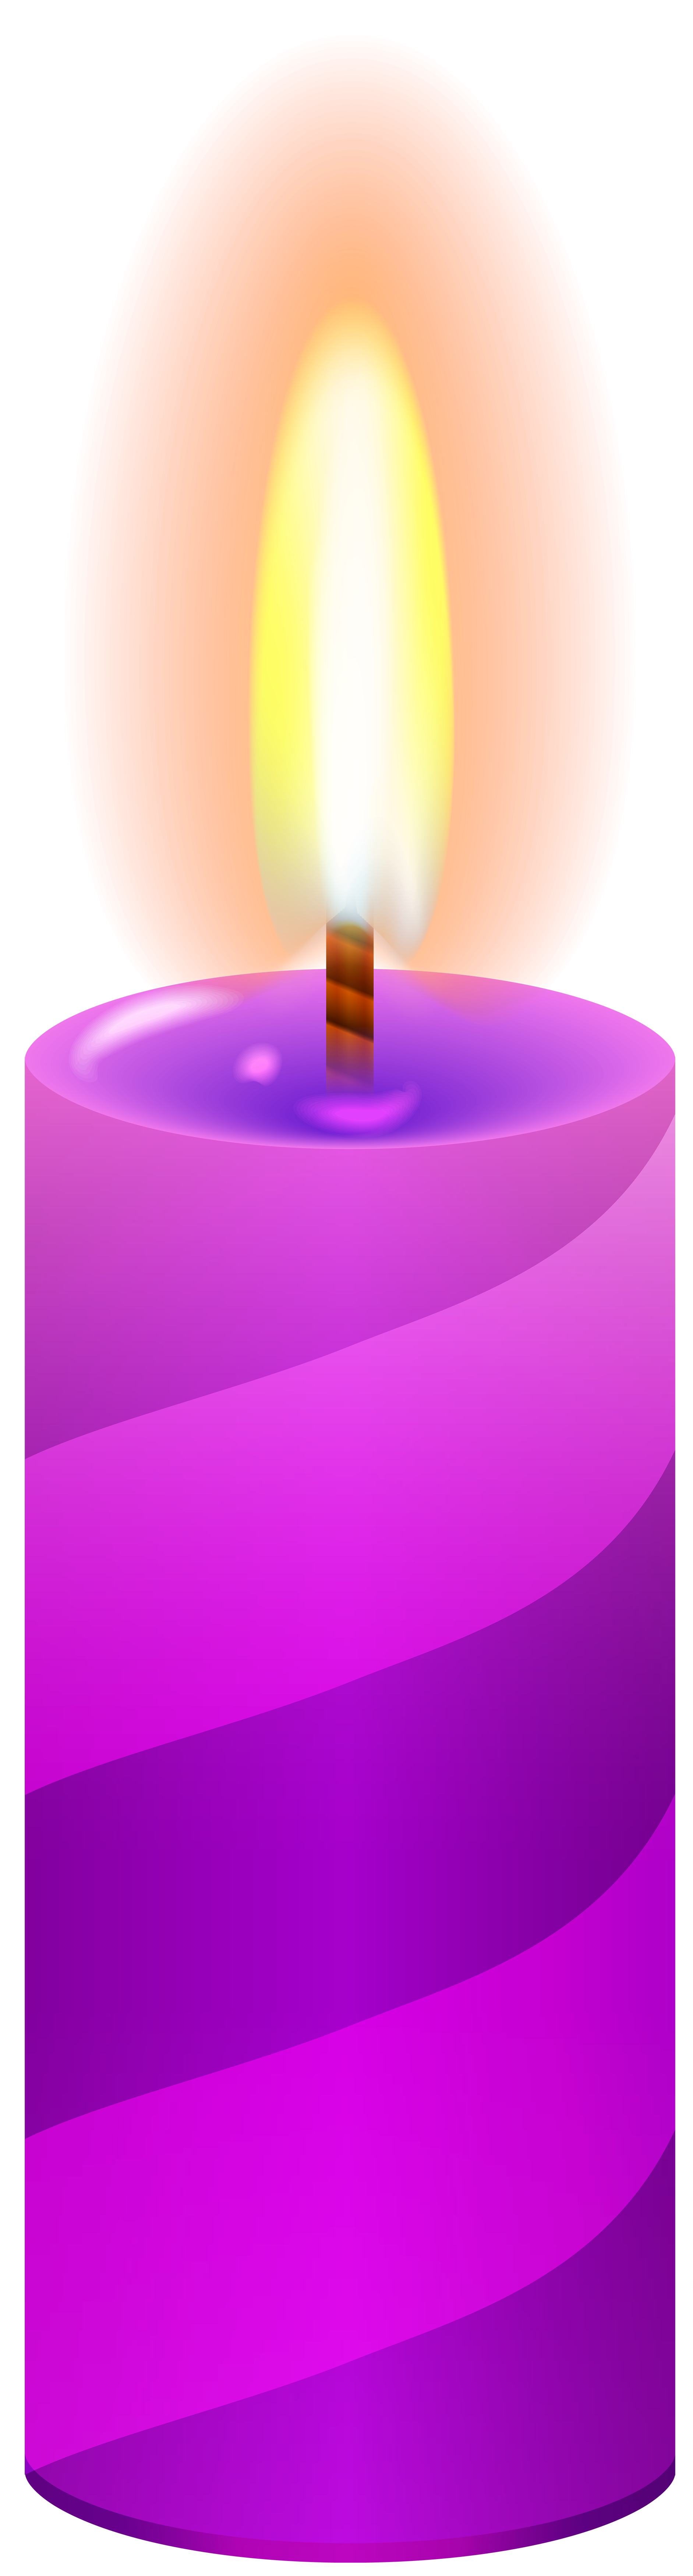 Candles clipart png. Candle purple clip art